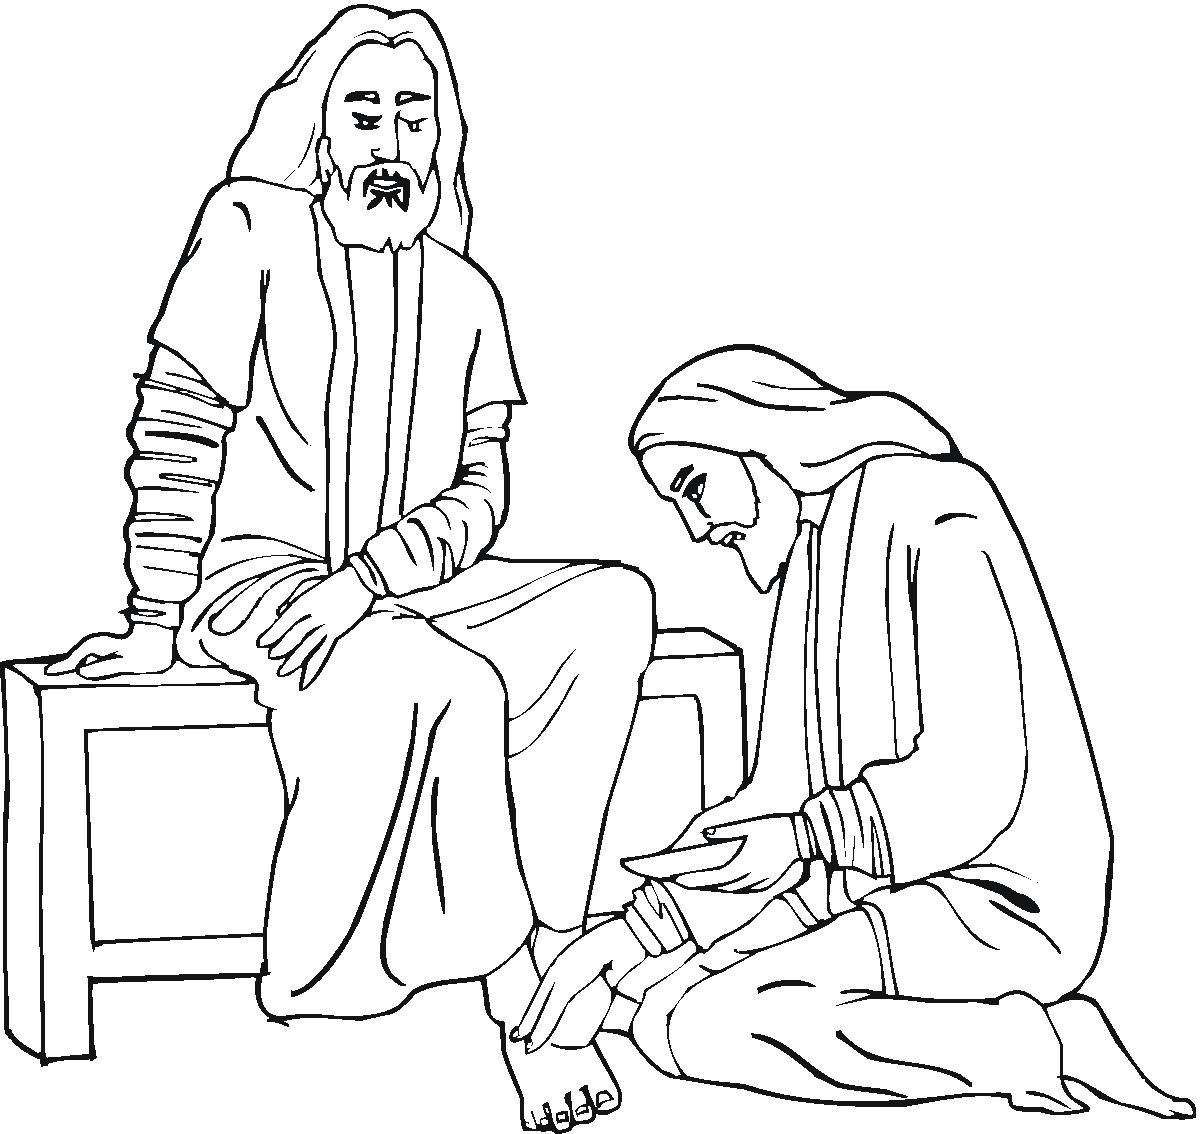 jesus washes the disciples feet coloring page rock of ages bible coloring pages free jesus coloring jesus the feet page disciples washes coloring